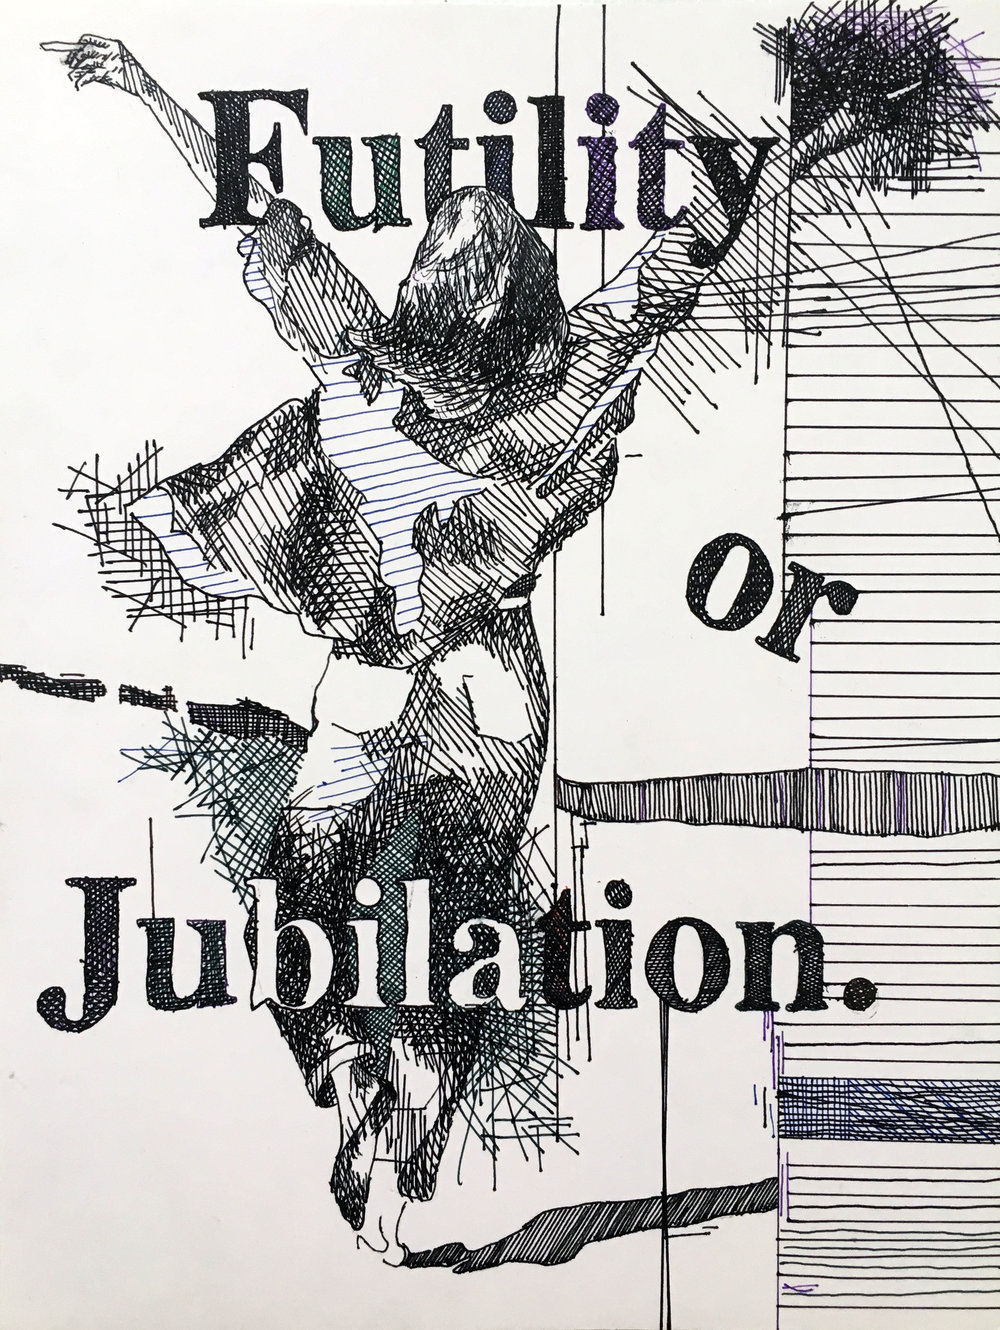 Untitled Merit #11 (Futility or Jubilation)